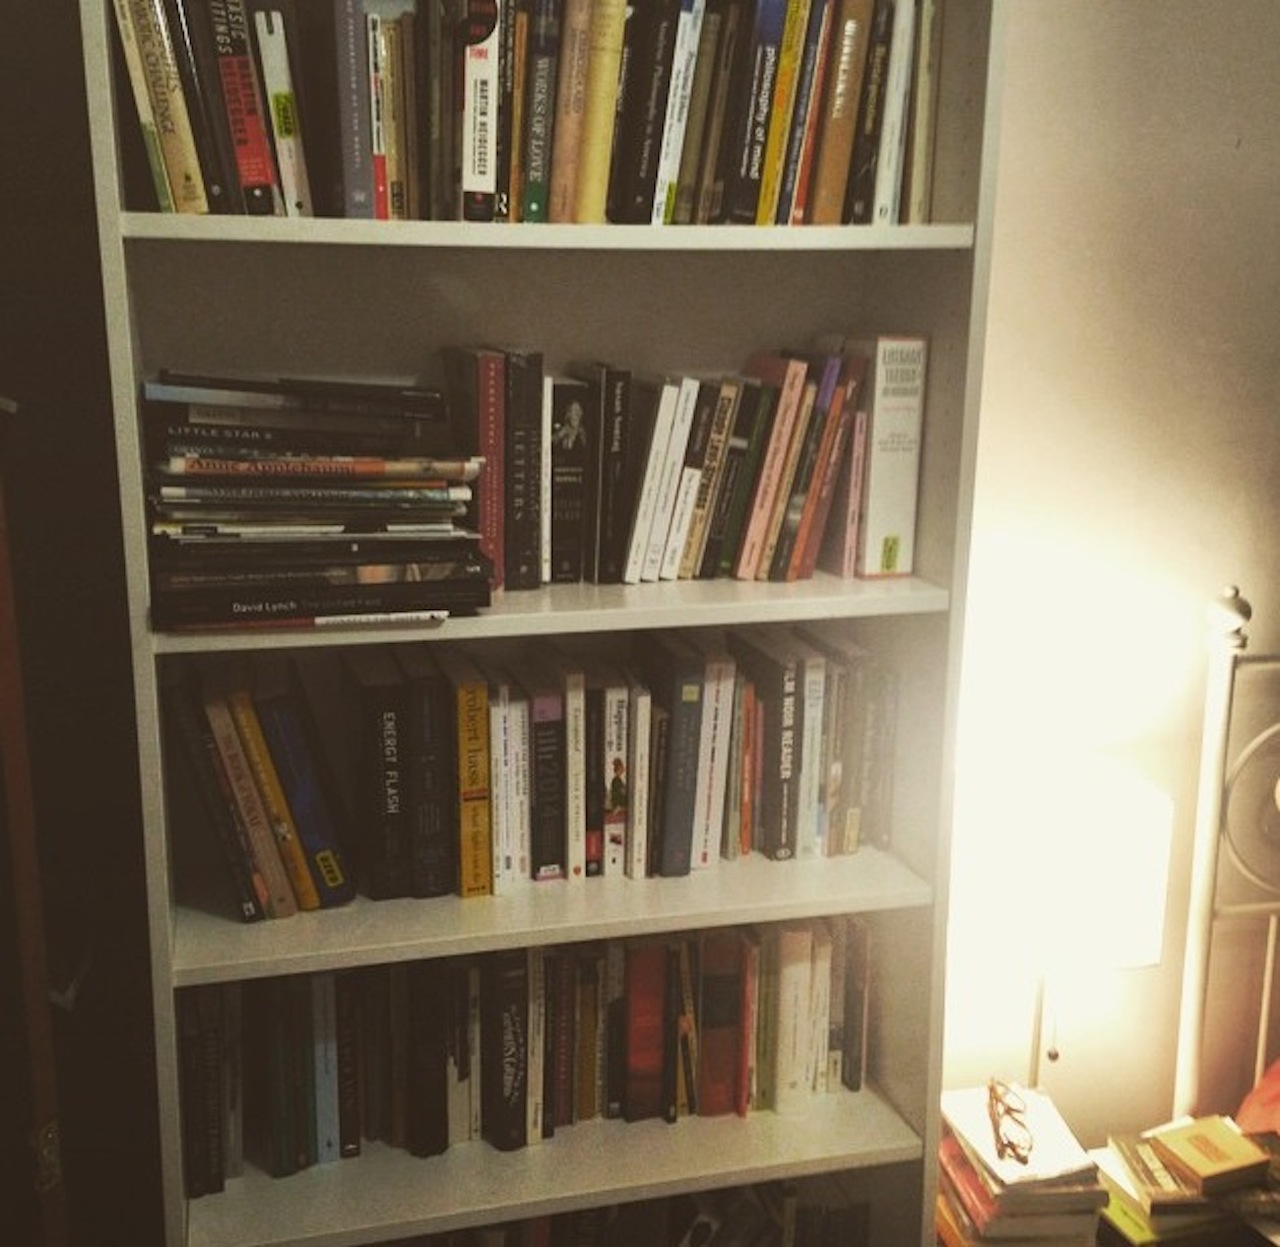 The author's bookshelf (photo by the author for Hyperallergic)